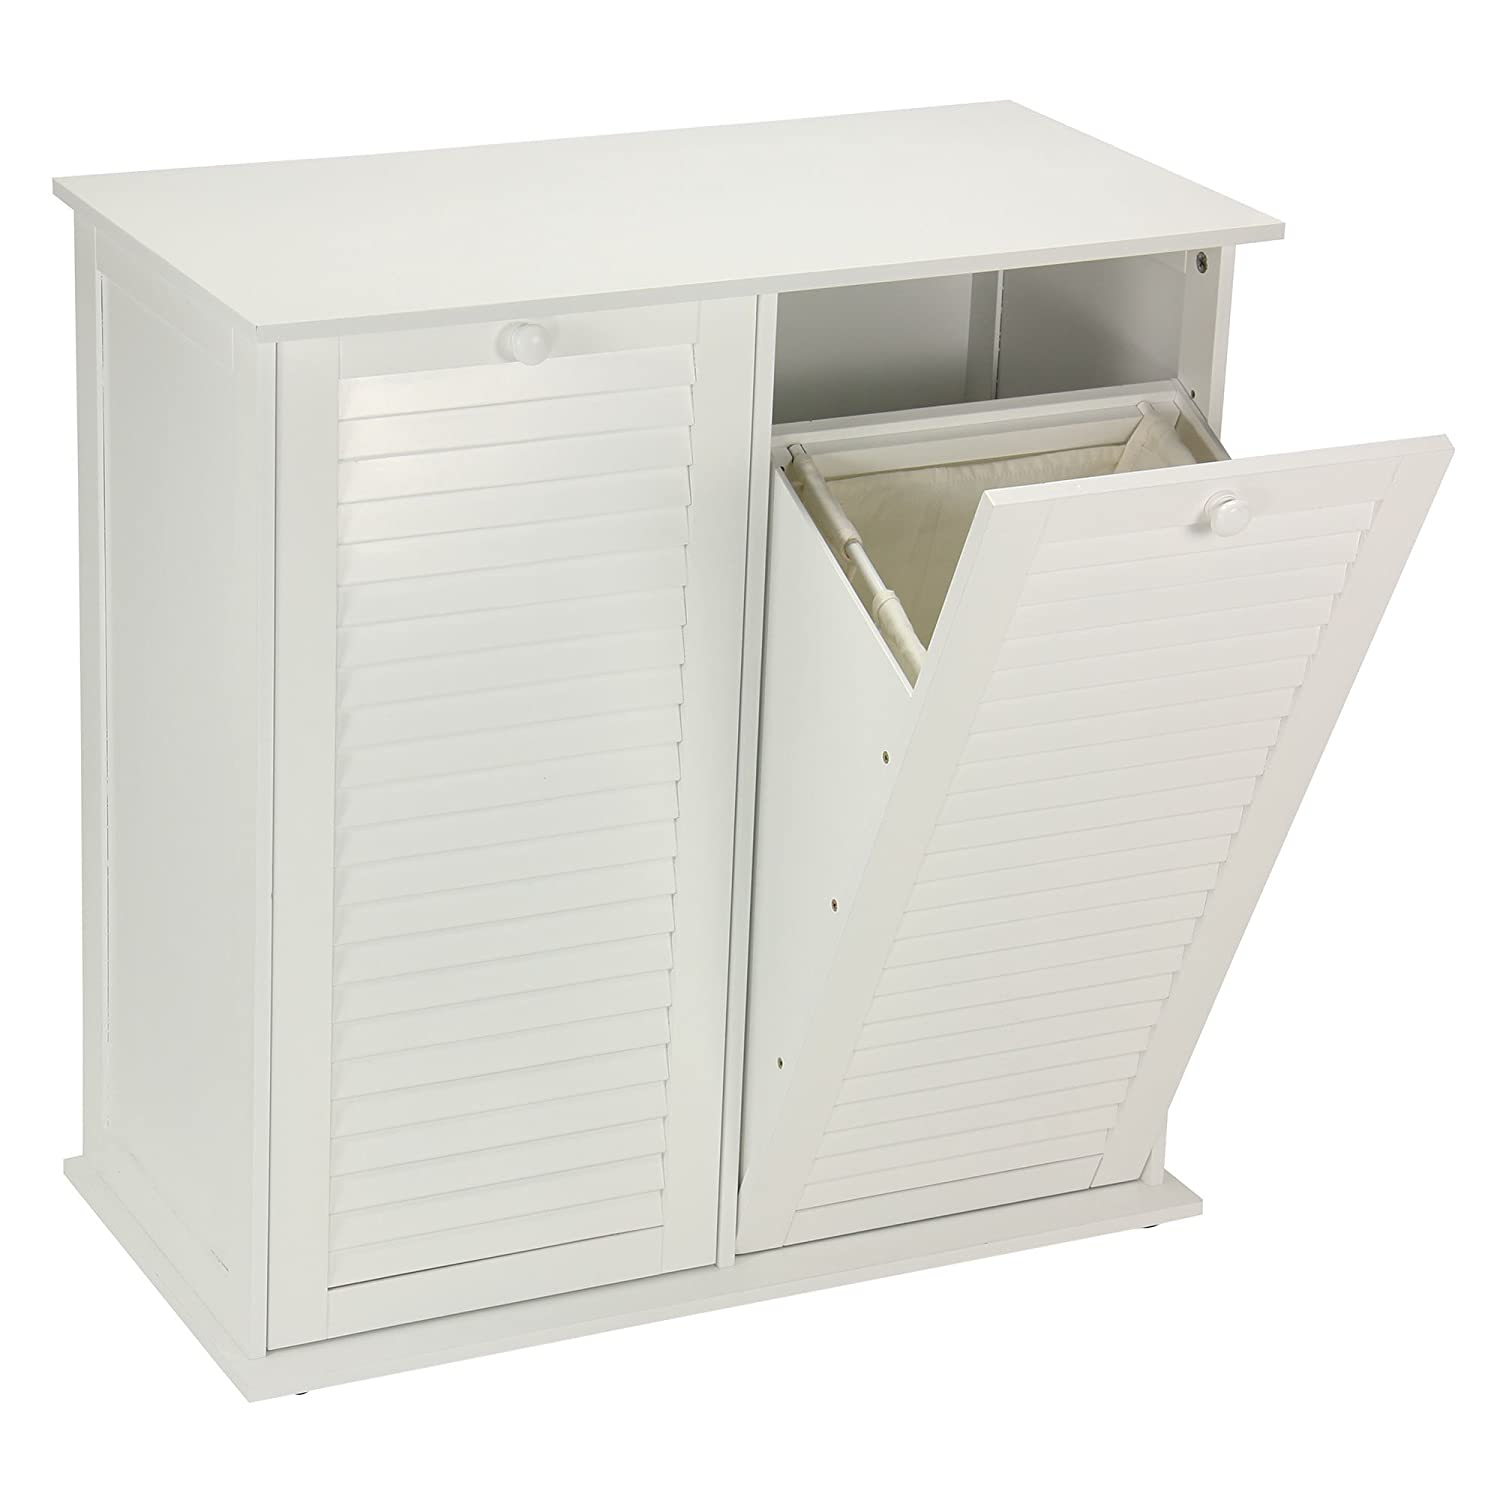 Beautiful Amazon.com: Household Essentials Tilt Out Laundry Sorter Cabinet With  Shutter Front: Home U0026 Kitchen